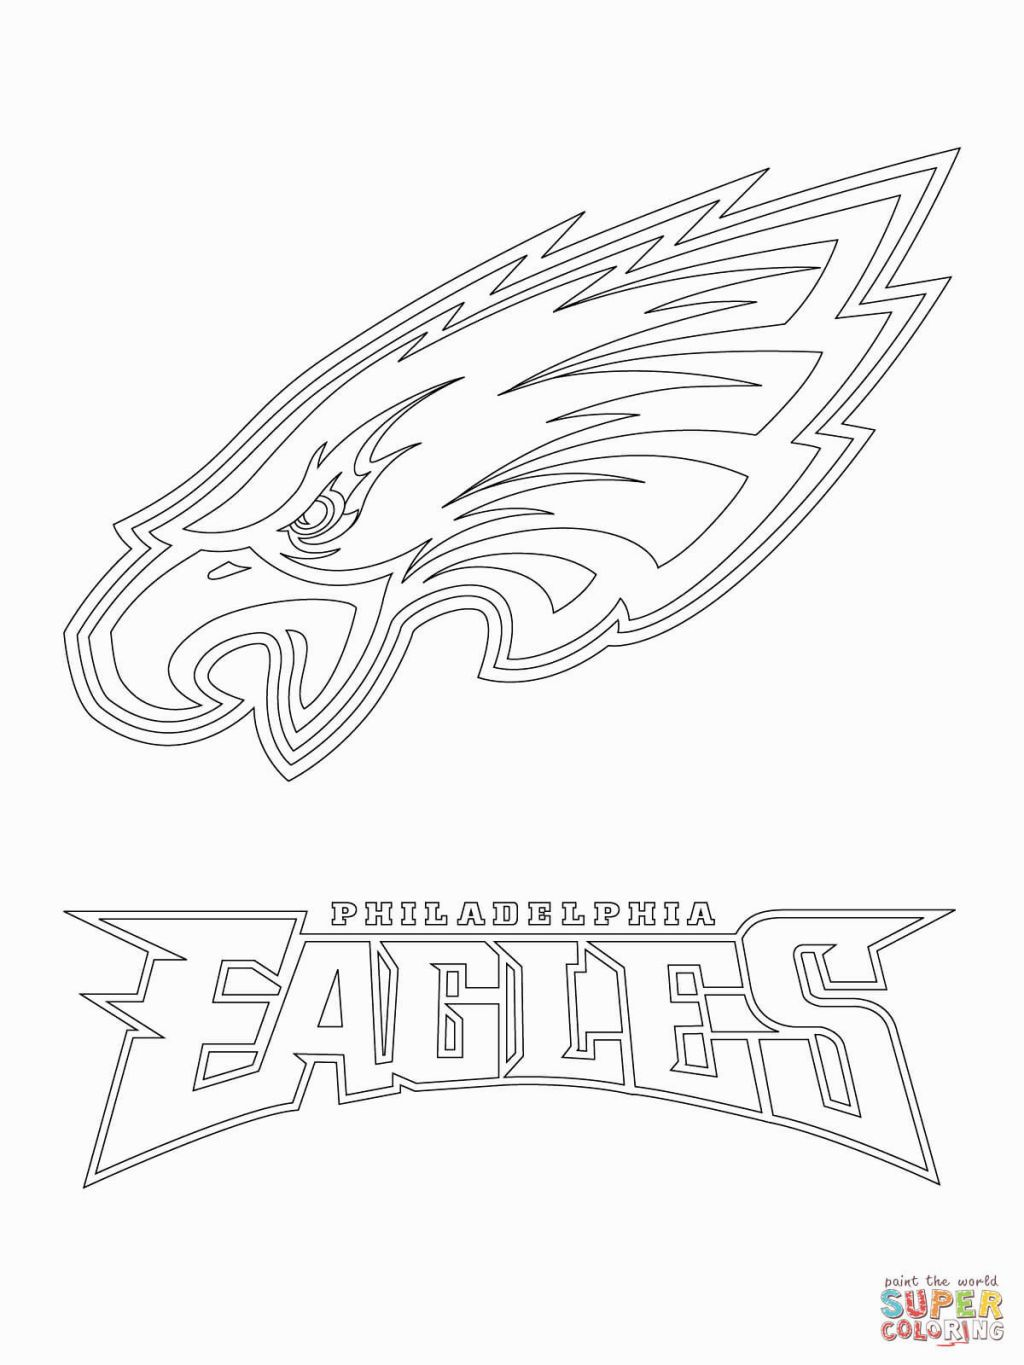 philadelphia eagles coloring pages Philadelphia Eagles Coloring Pages | Coloring Pages | Philadelphia  philadelphia eagles coloring pages